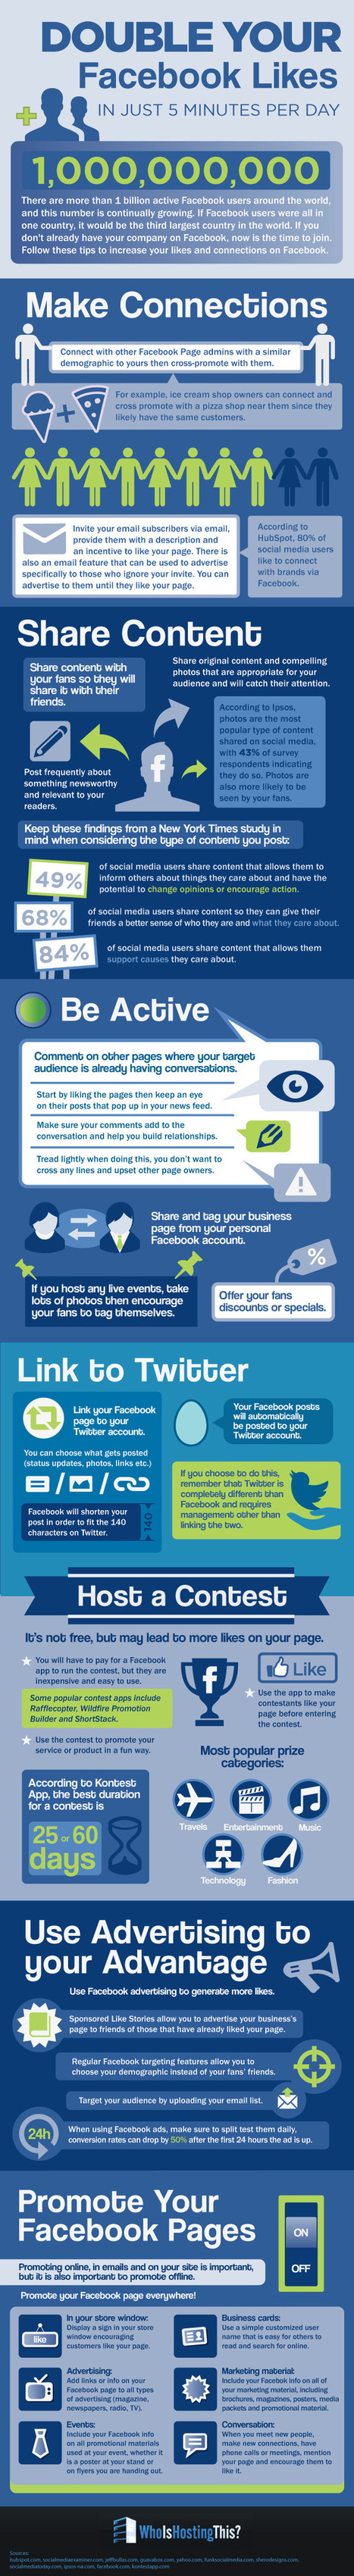 10 Tips to to Double Your Facebook Likes #infographic | MarketingHits | Scoop.it